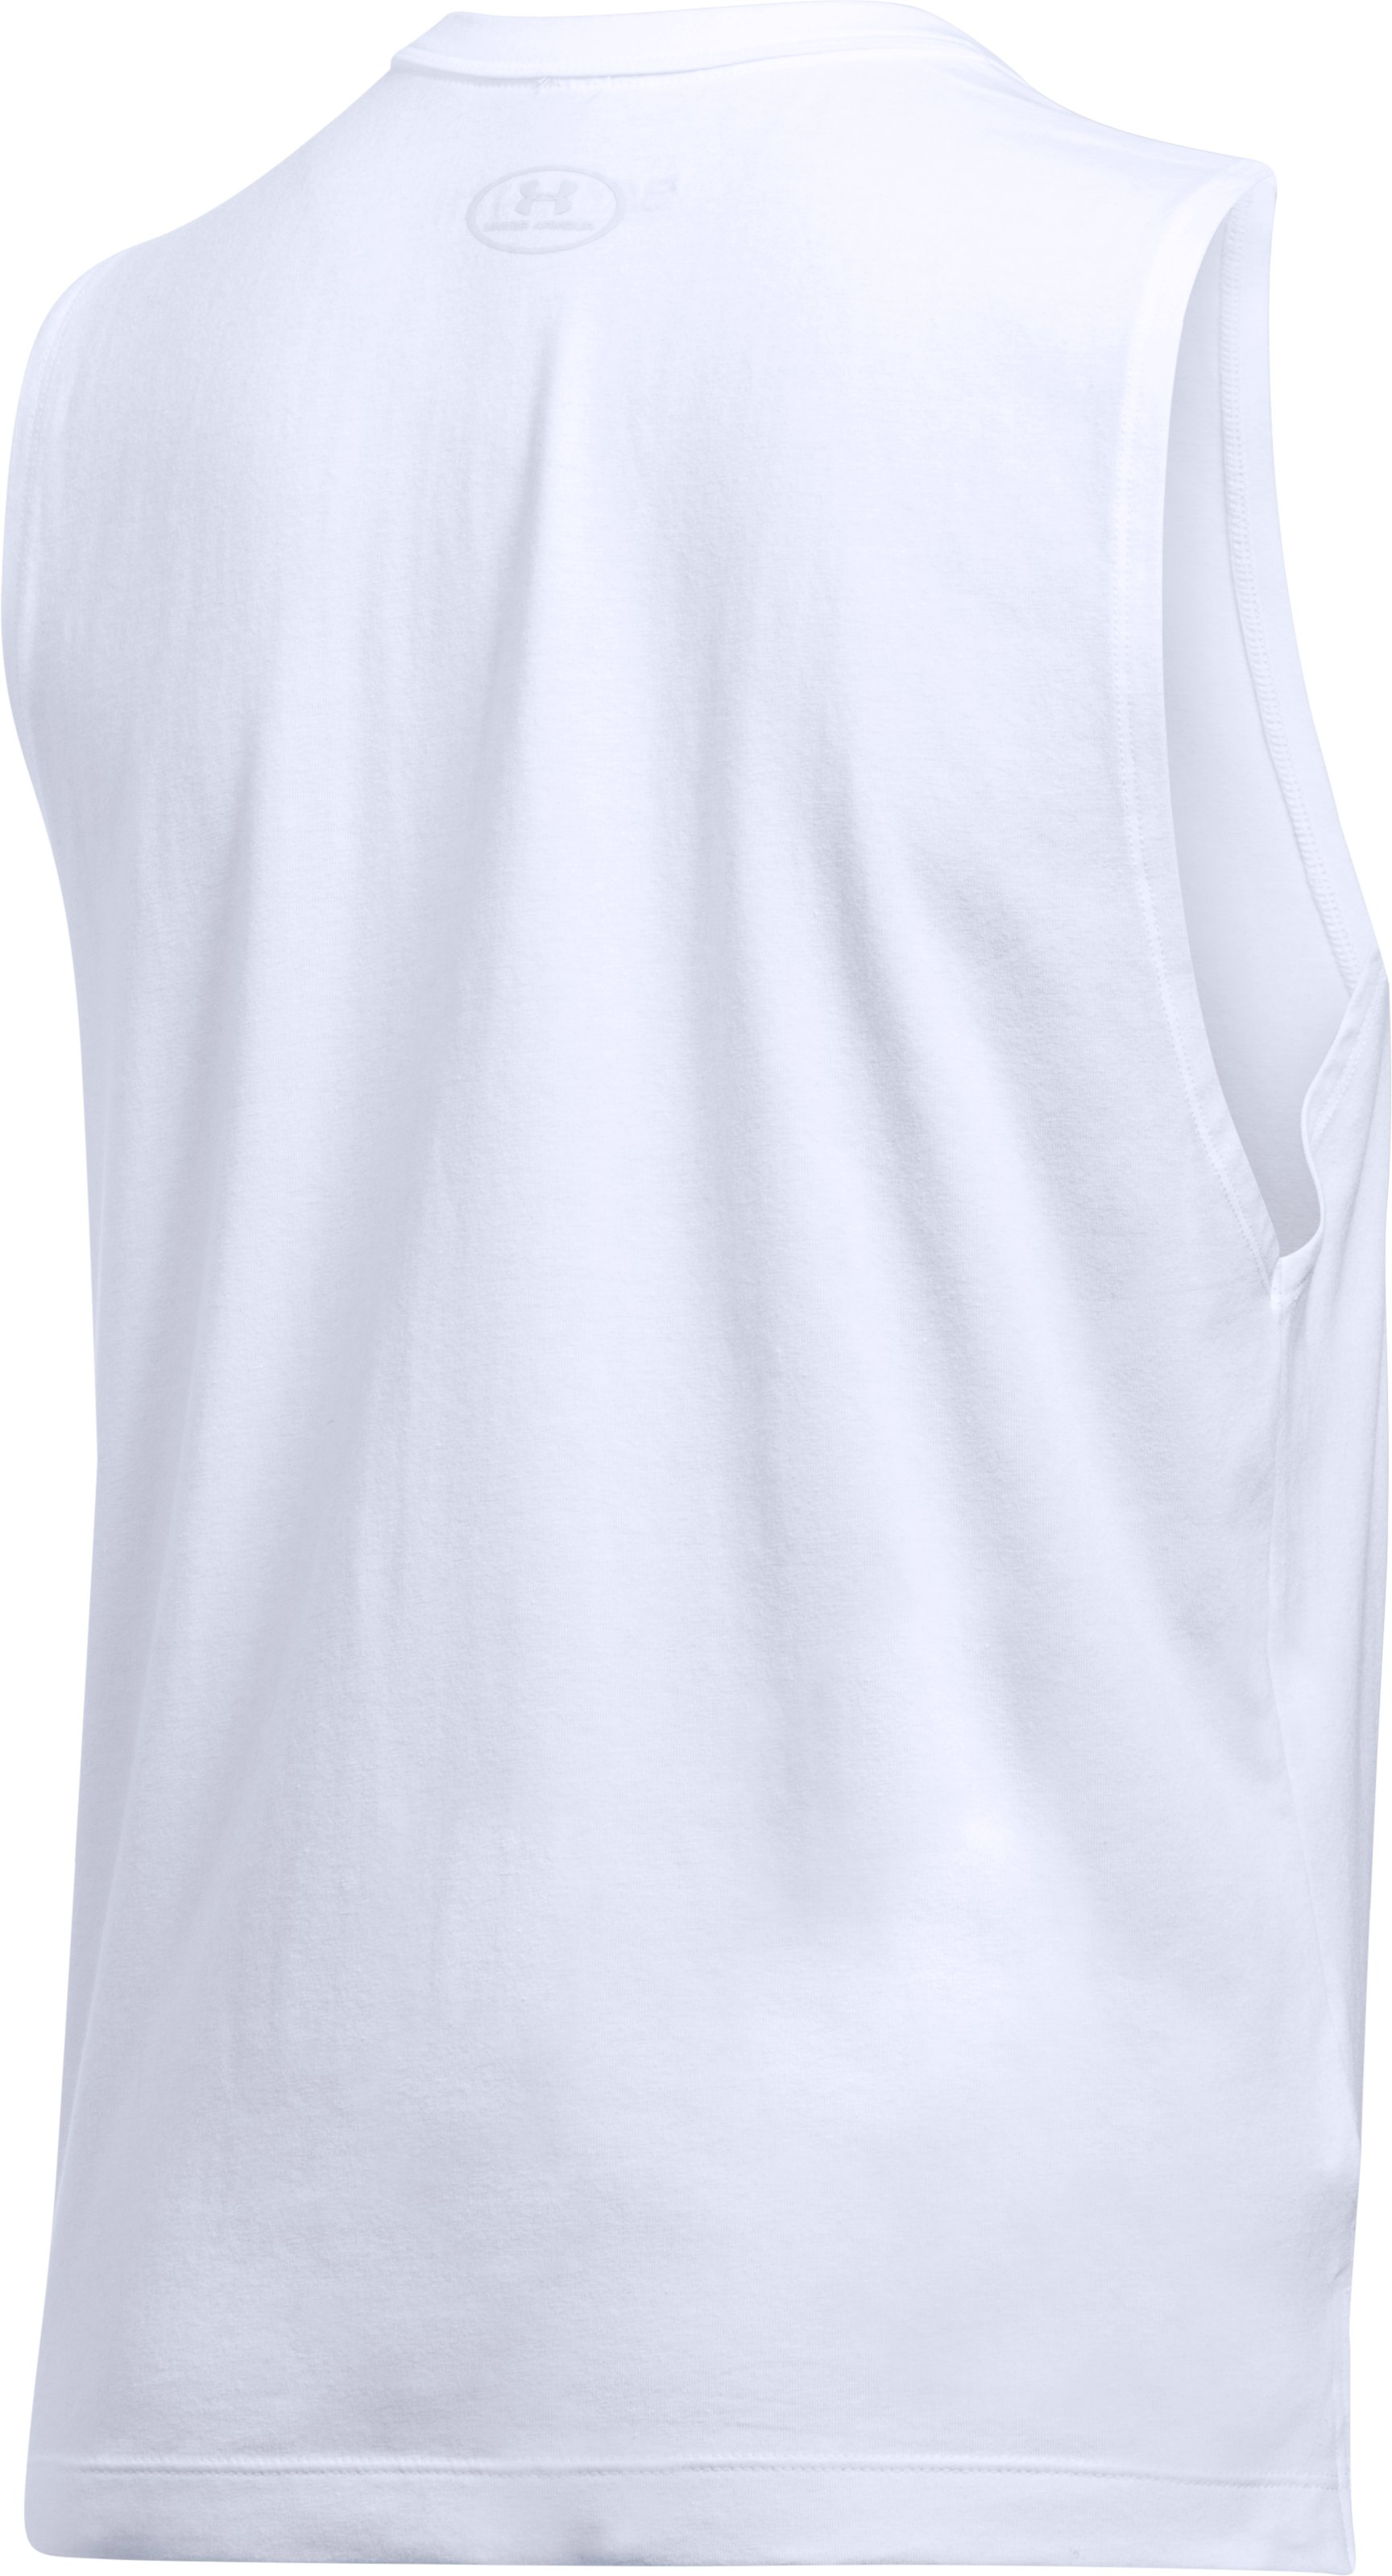 Women's Baywatch Retro Muscle T, White, undefined